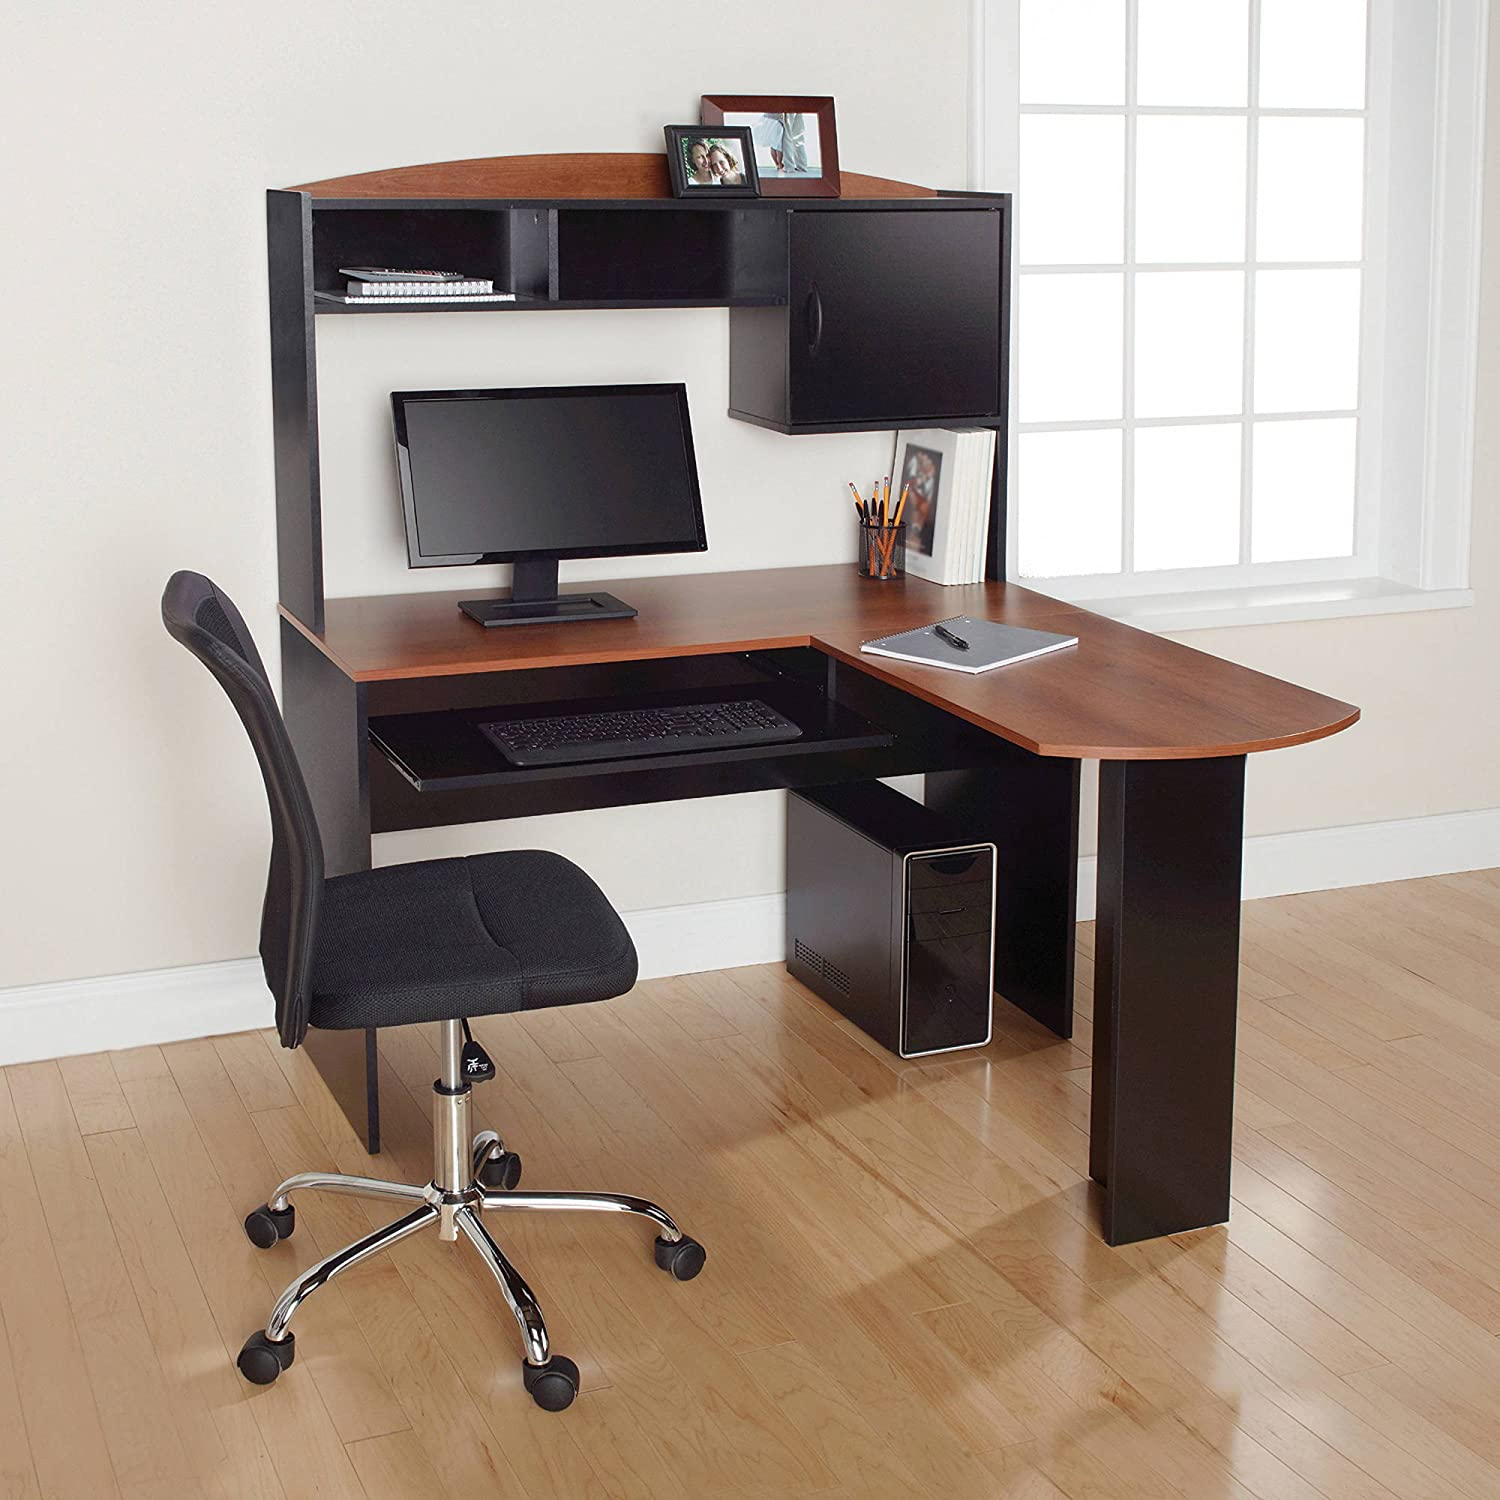 l desk office. Amazon.com: Mainstays L-Shaped Desk With Hutch, Multiple Finishes Black \u0026 Cherry: Kitchen Dining L Office D